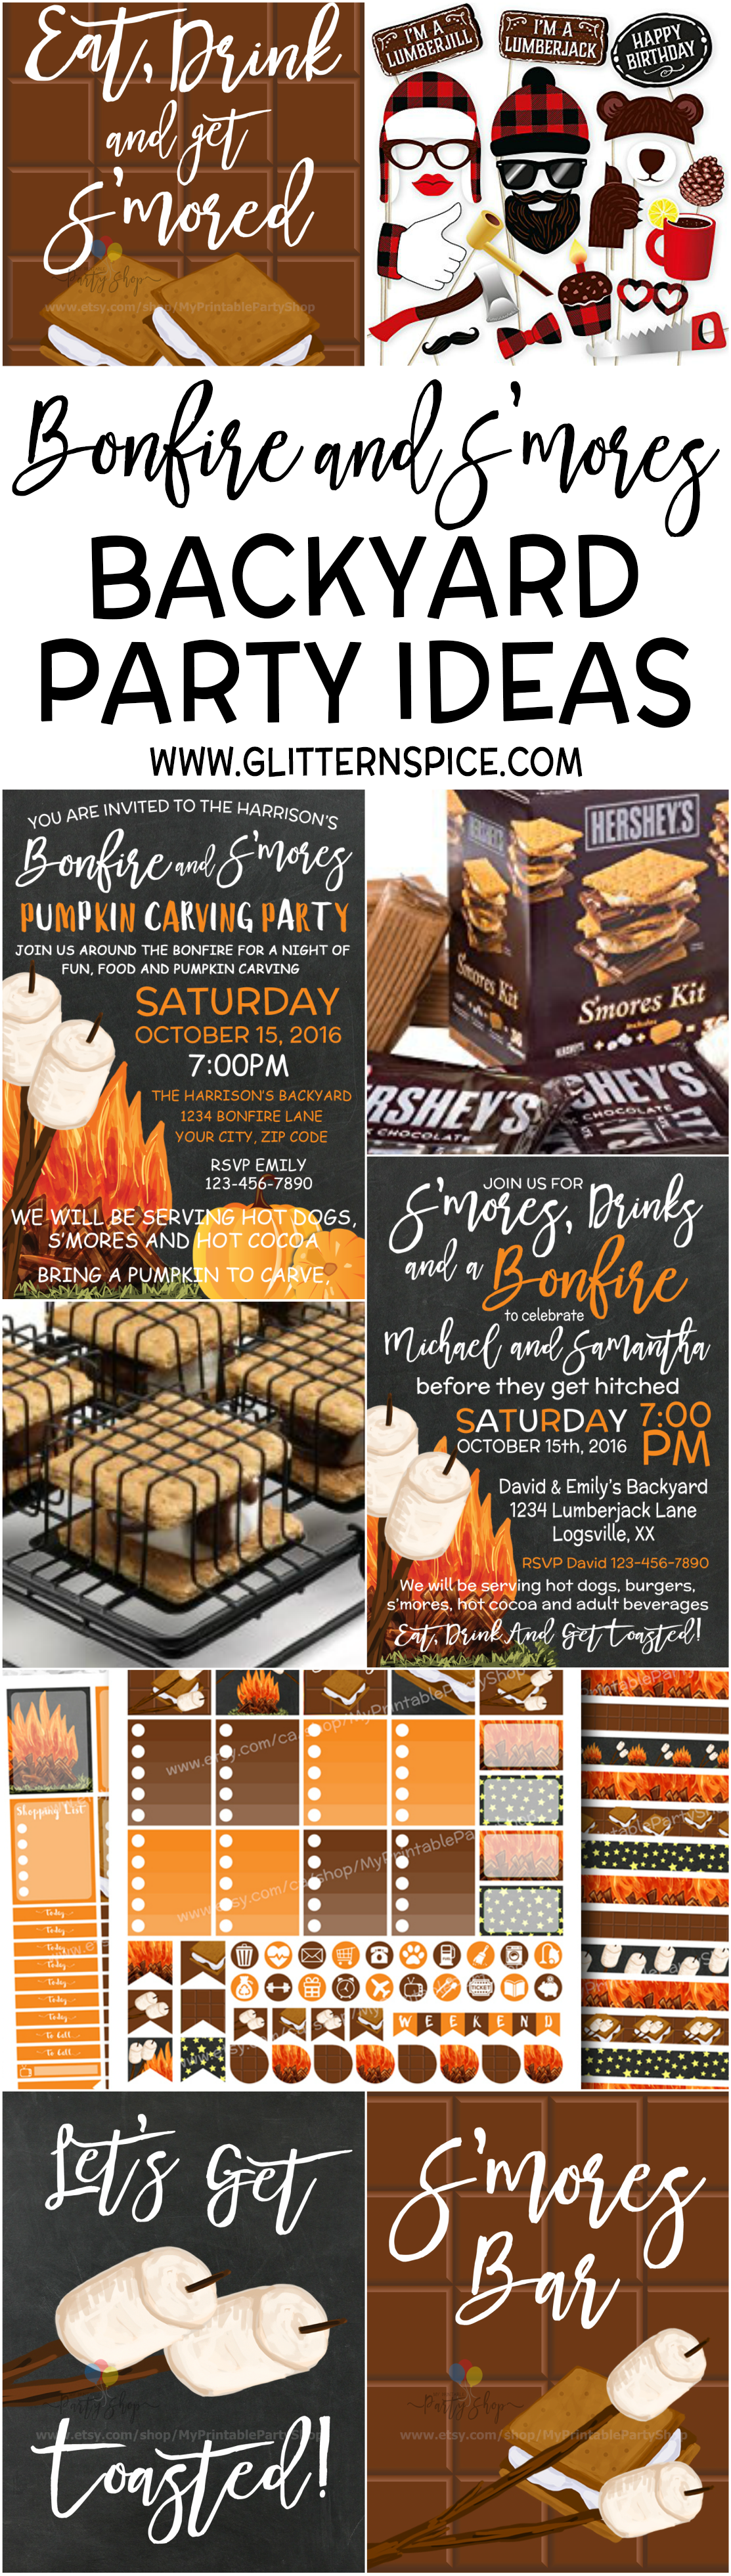 Smores And Bonfire Backyard Party Ideas